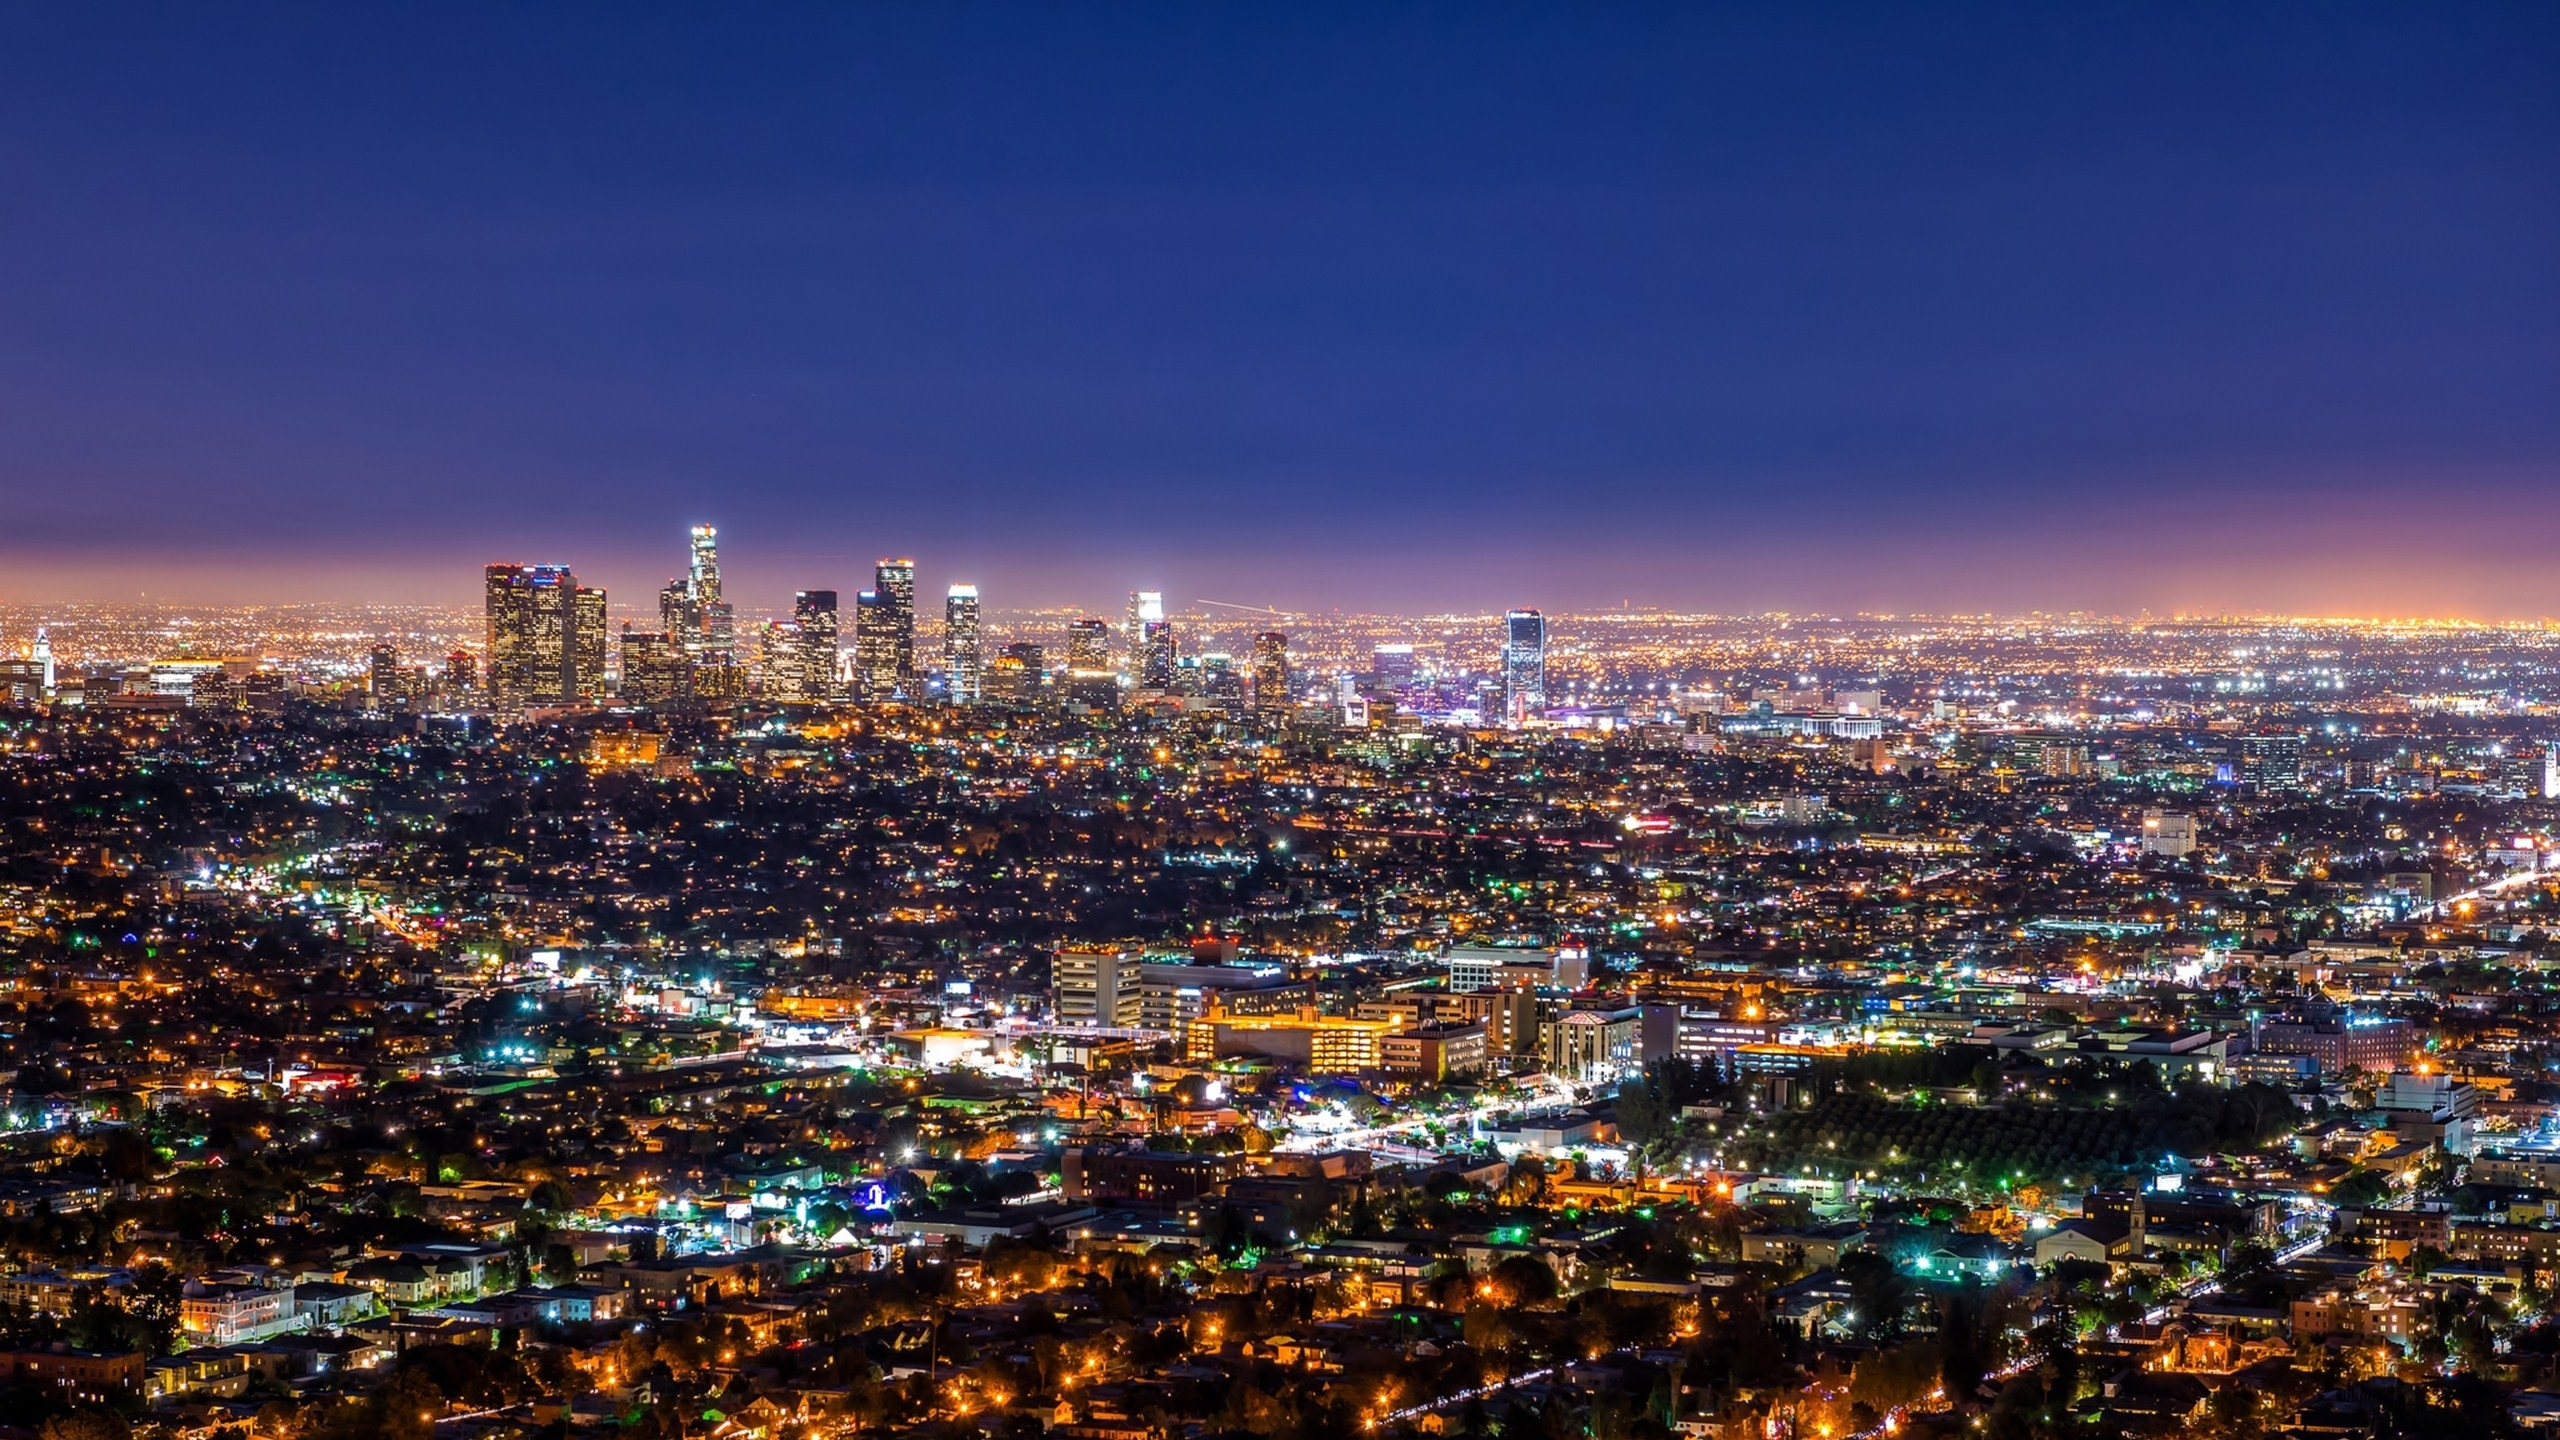 34 los angeles hd wallpapers | background images - wallpaper abyss